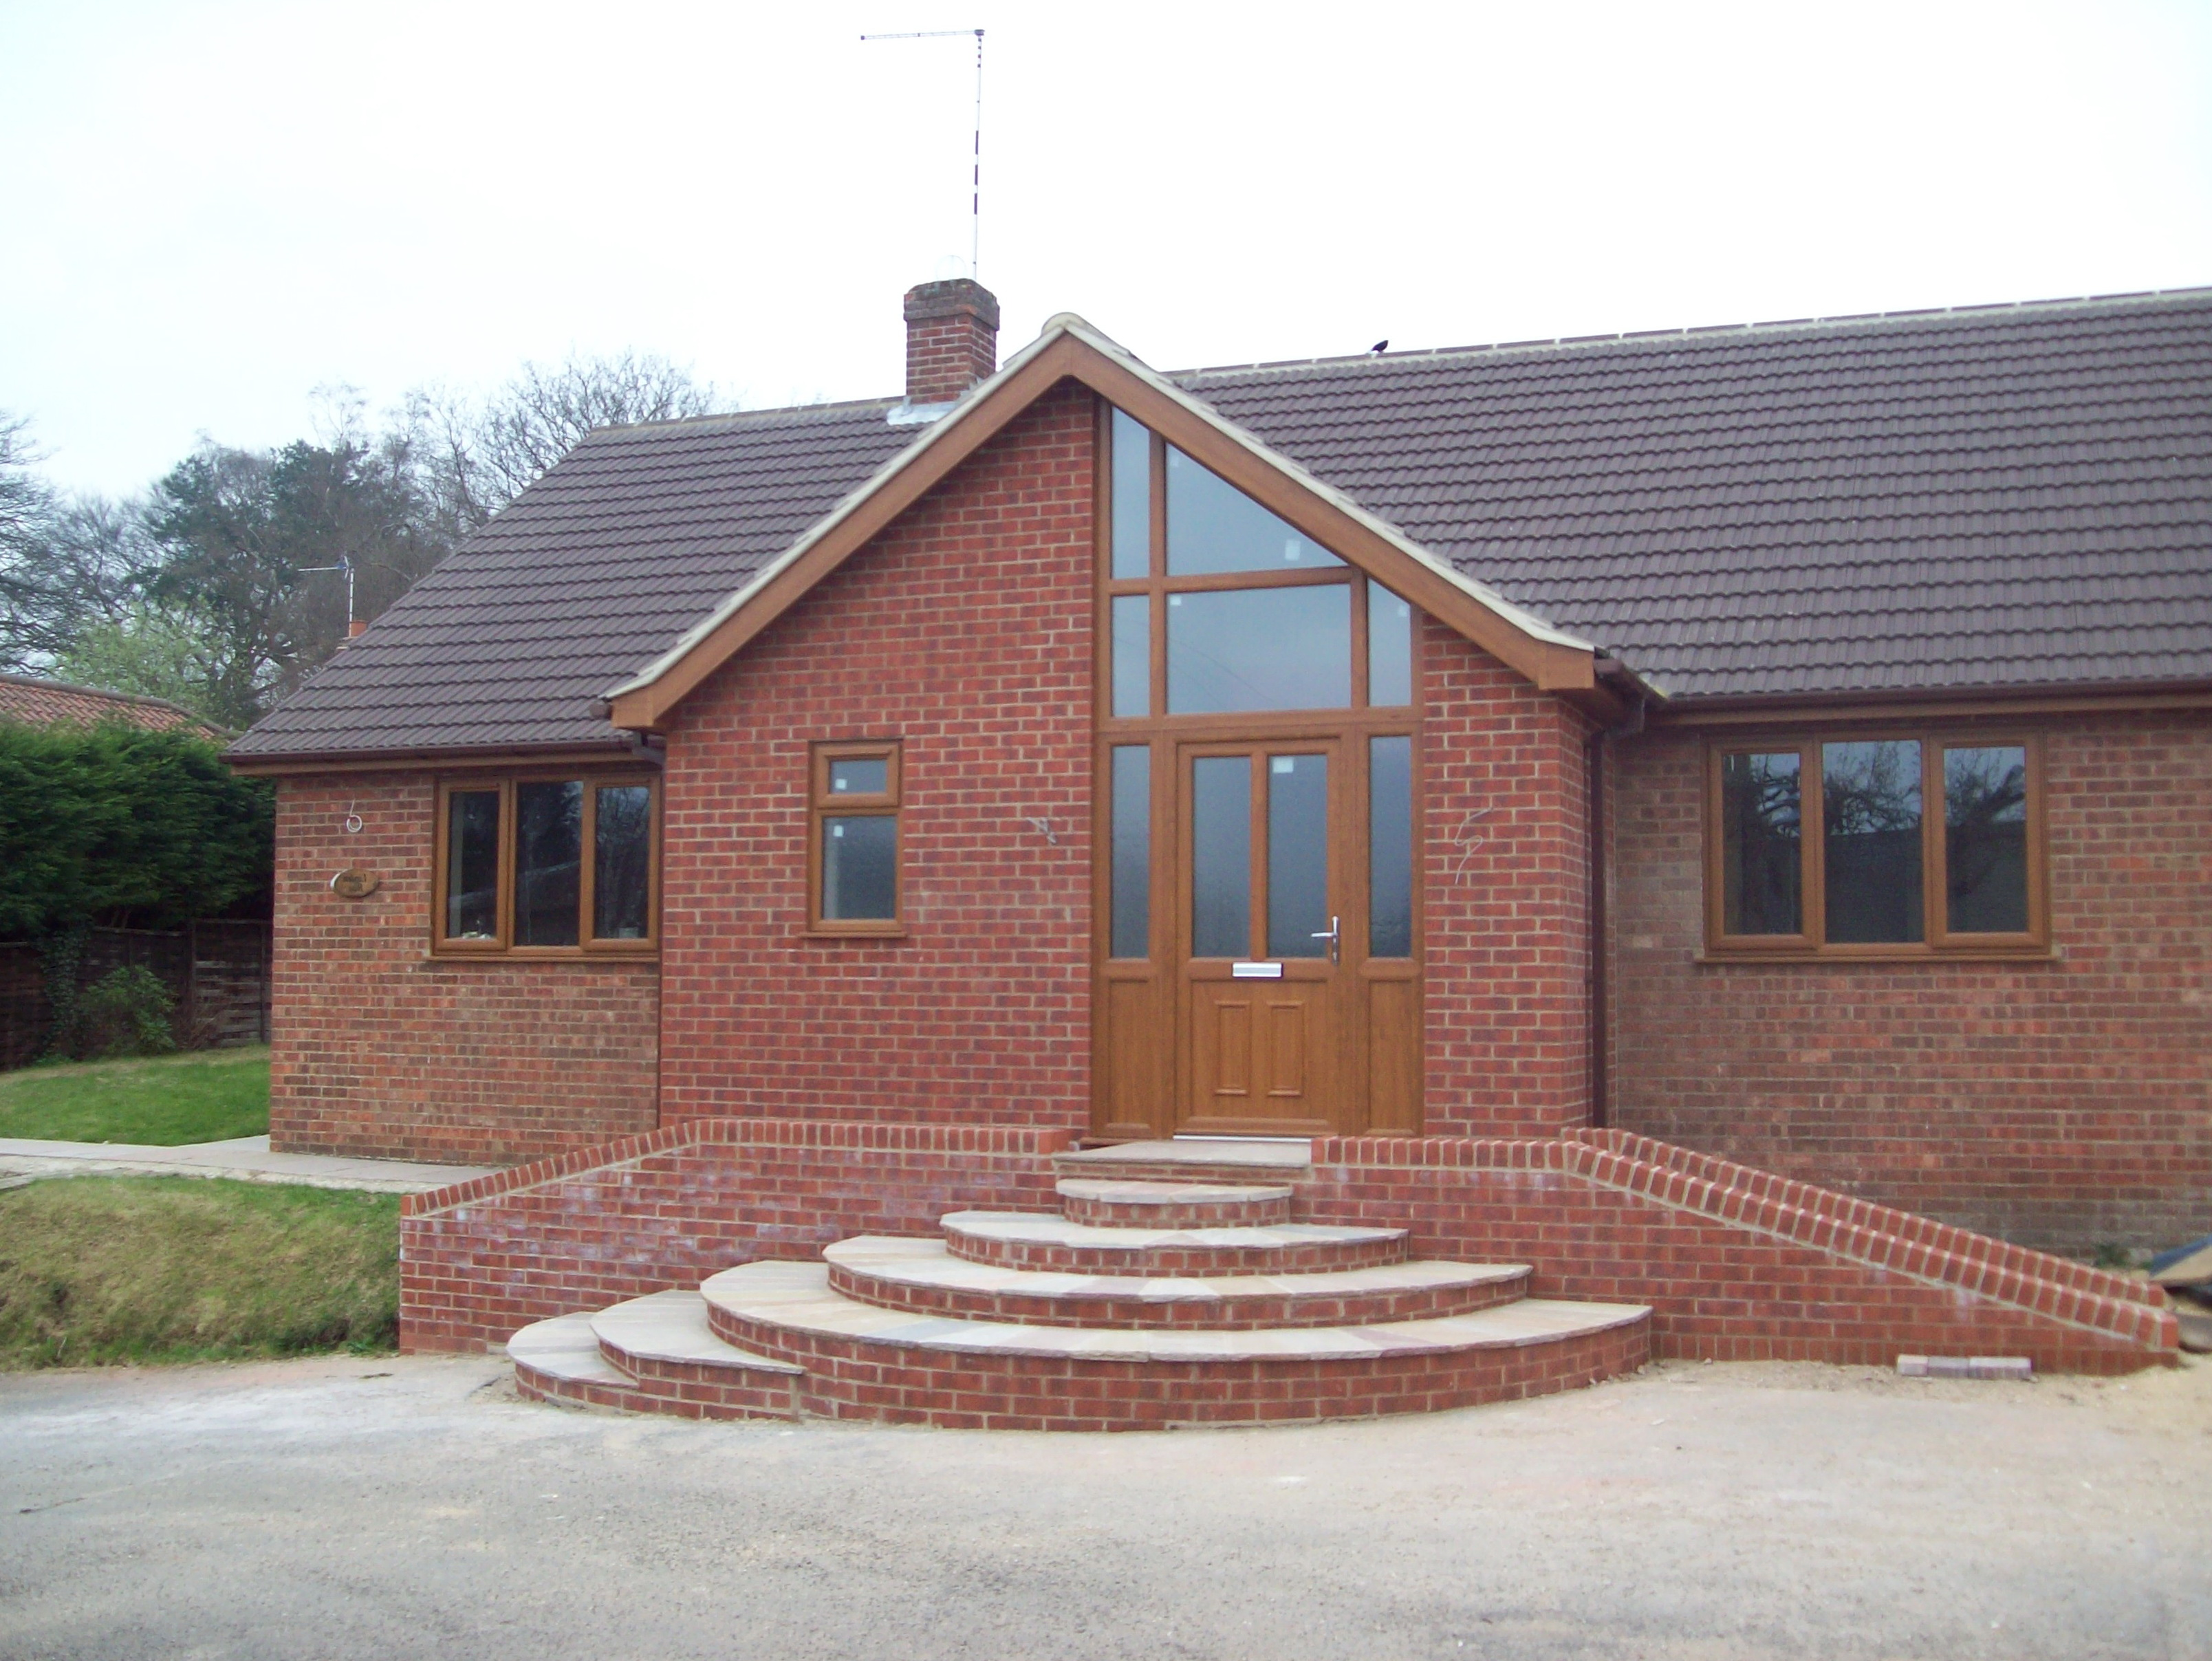 Bungalow front porch designs uk home design ideas for Porch designs for bungalows uk